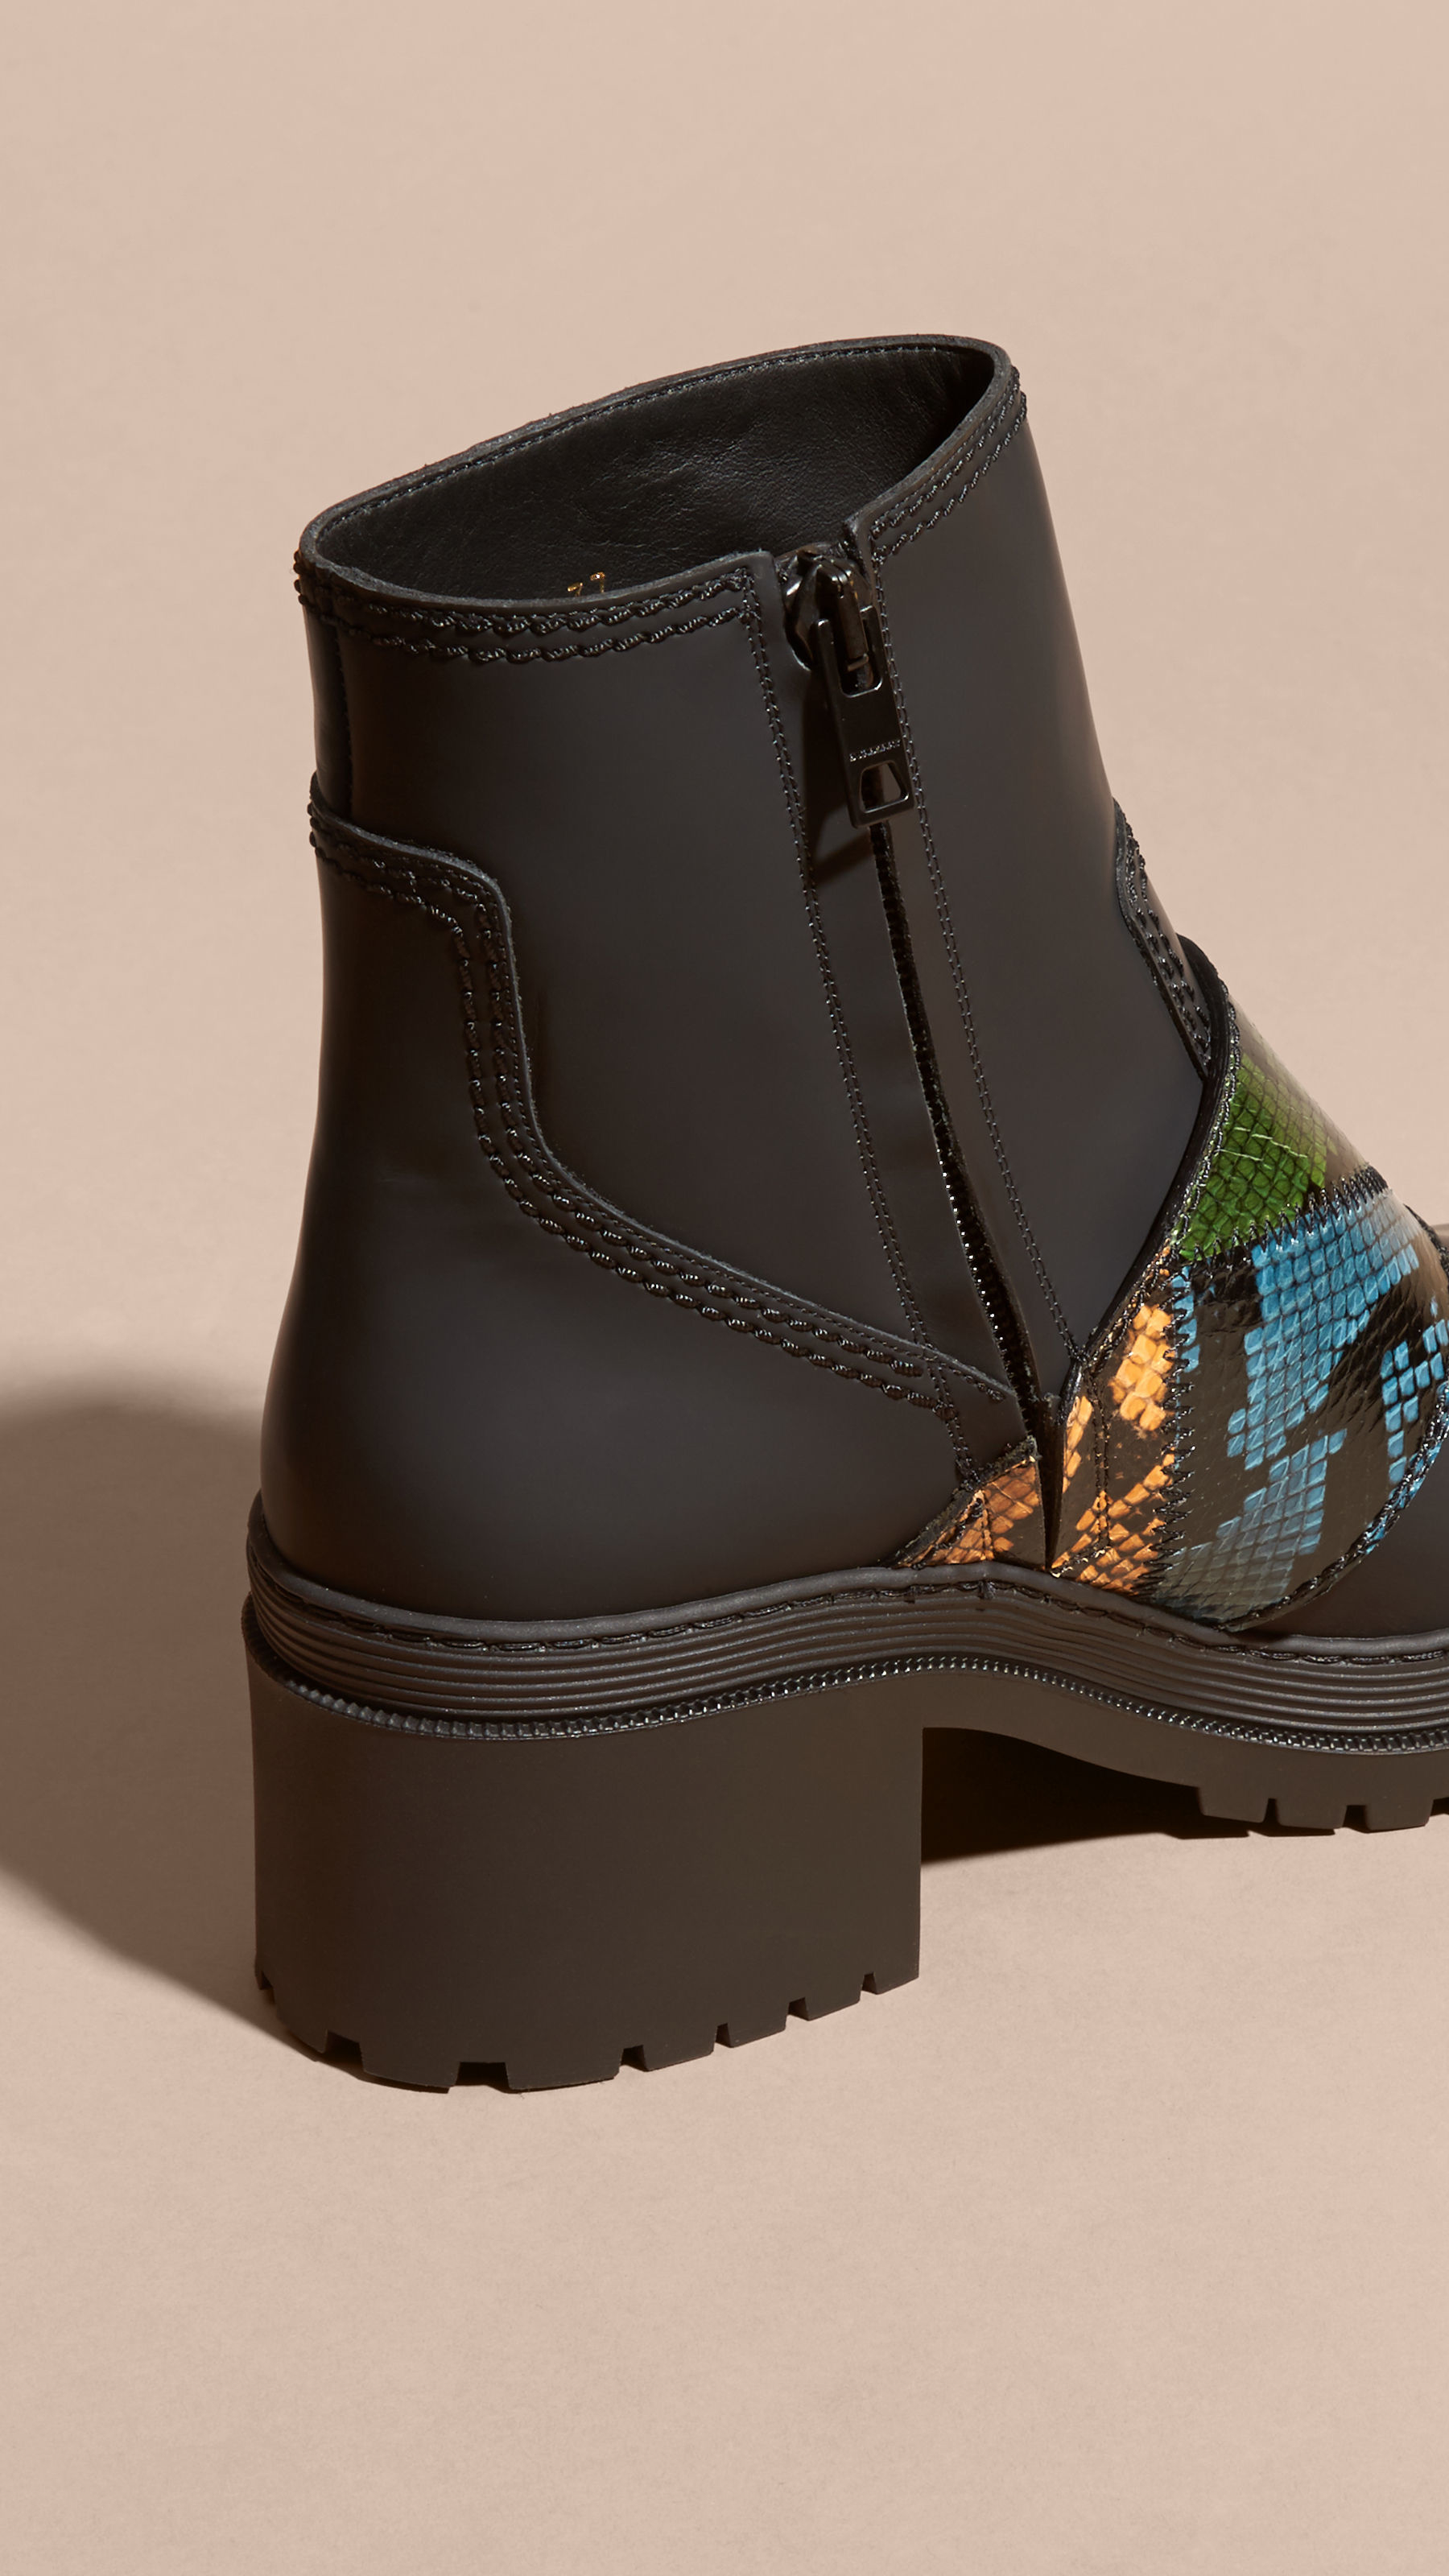 Burberry The Buckle Boot In Rubberised Leather And Snakeskin in Black